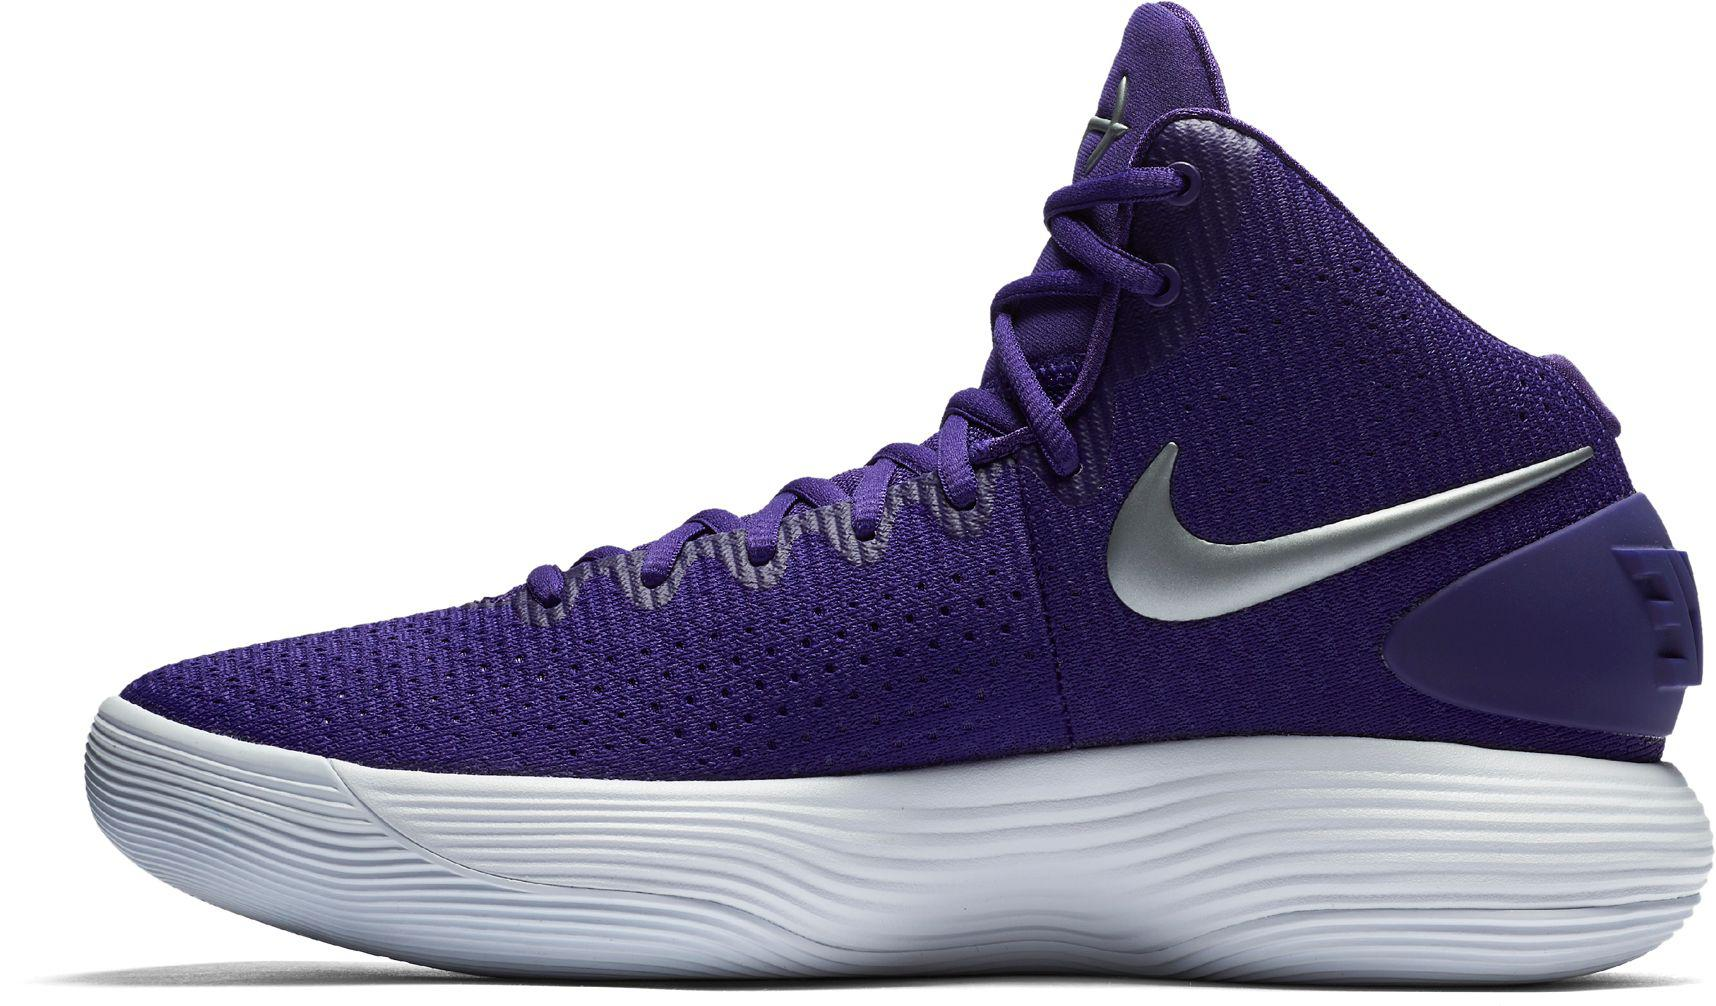 d6f32cd03329ce ... new style nike purple react hyperdunk 2017 basketball shoes for men lyst  1d9ae 38830